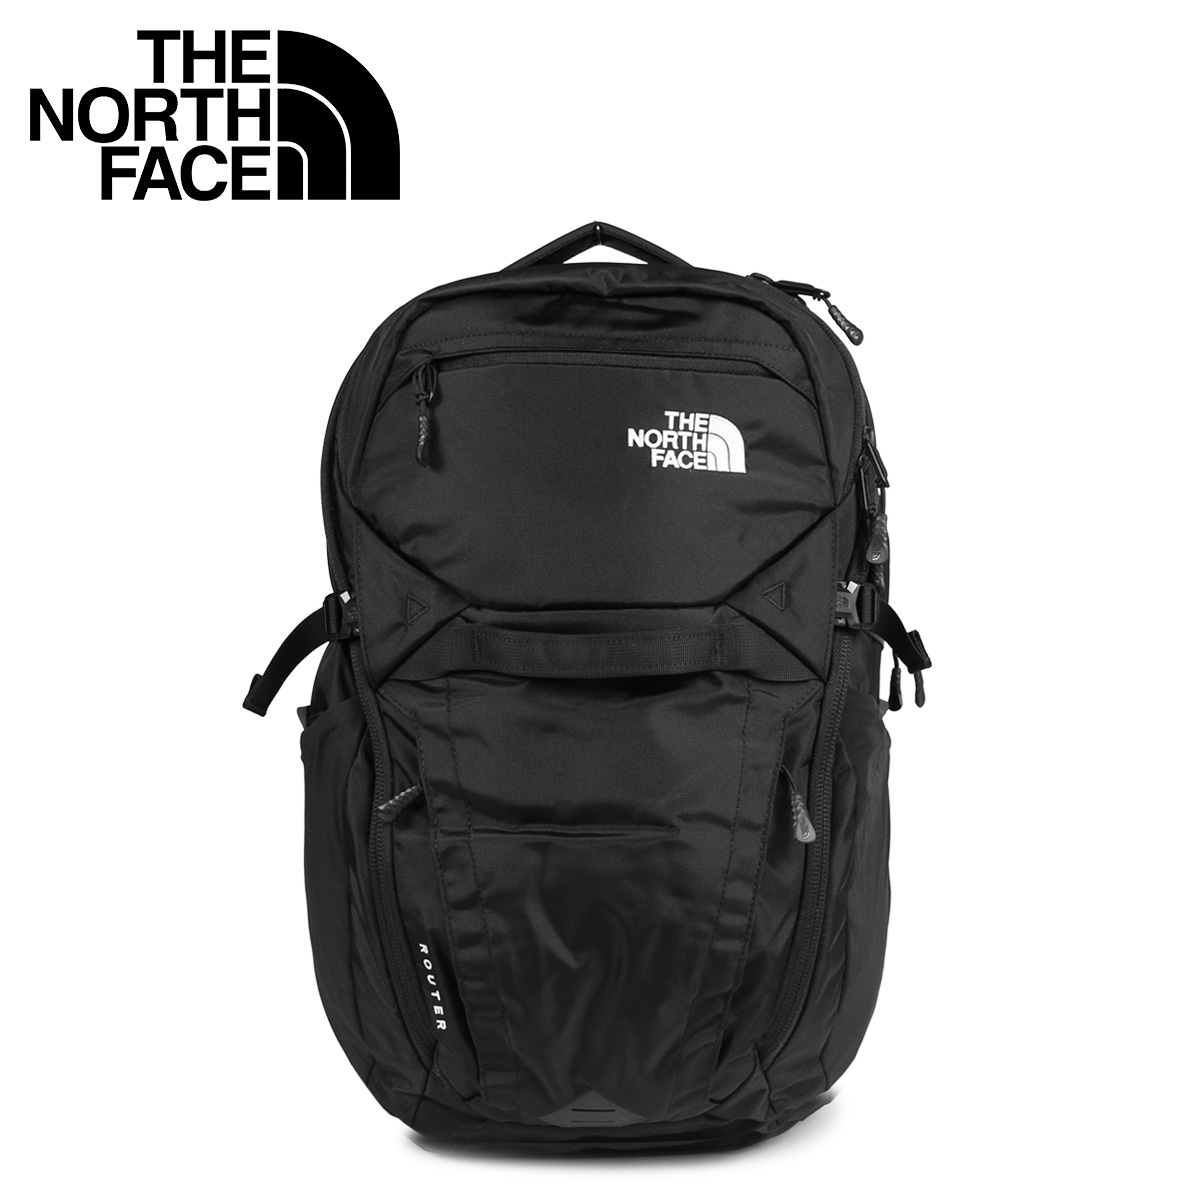 fb314c0f1 Whats up Sports: THE NORTH FACE ROUTER North Face rucksack bag ...